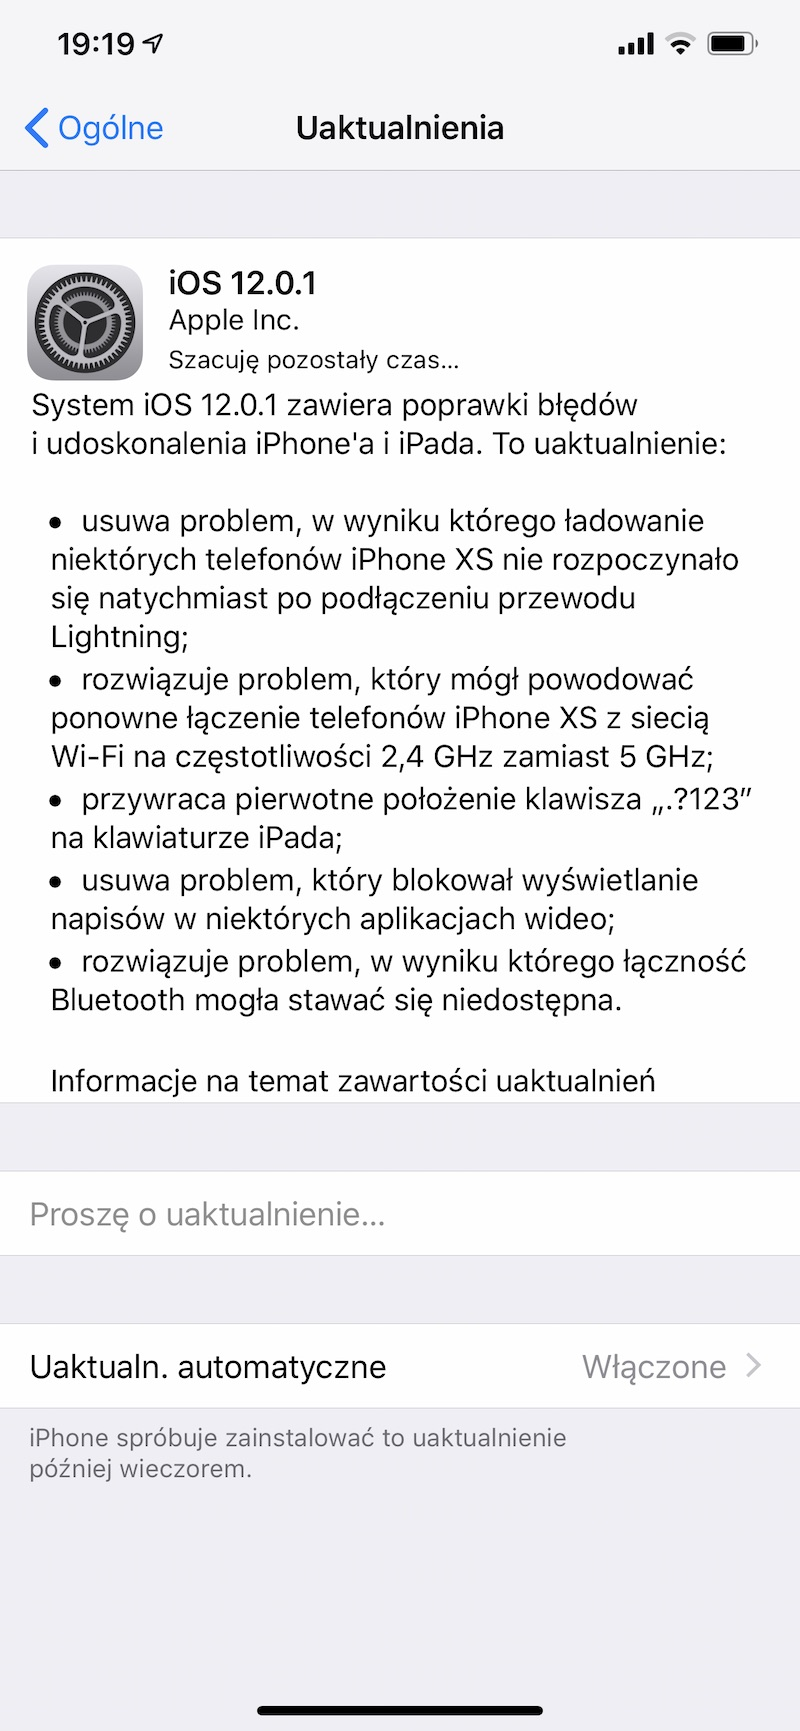 iOS 12.0.1 iphone xs